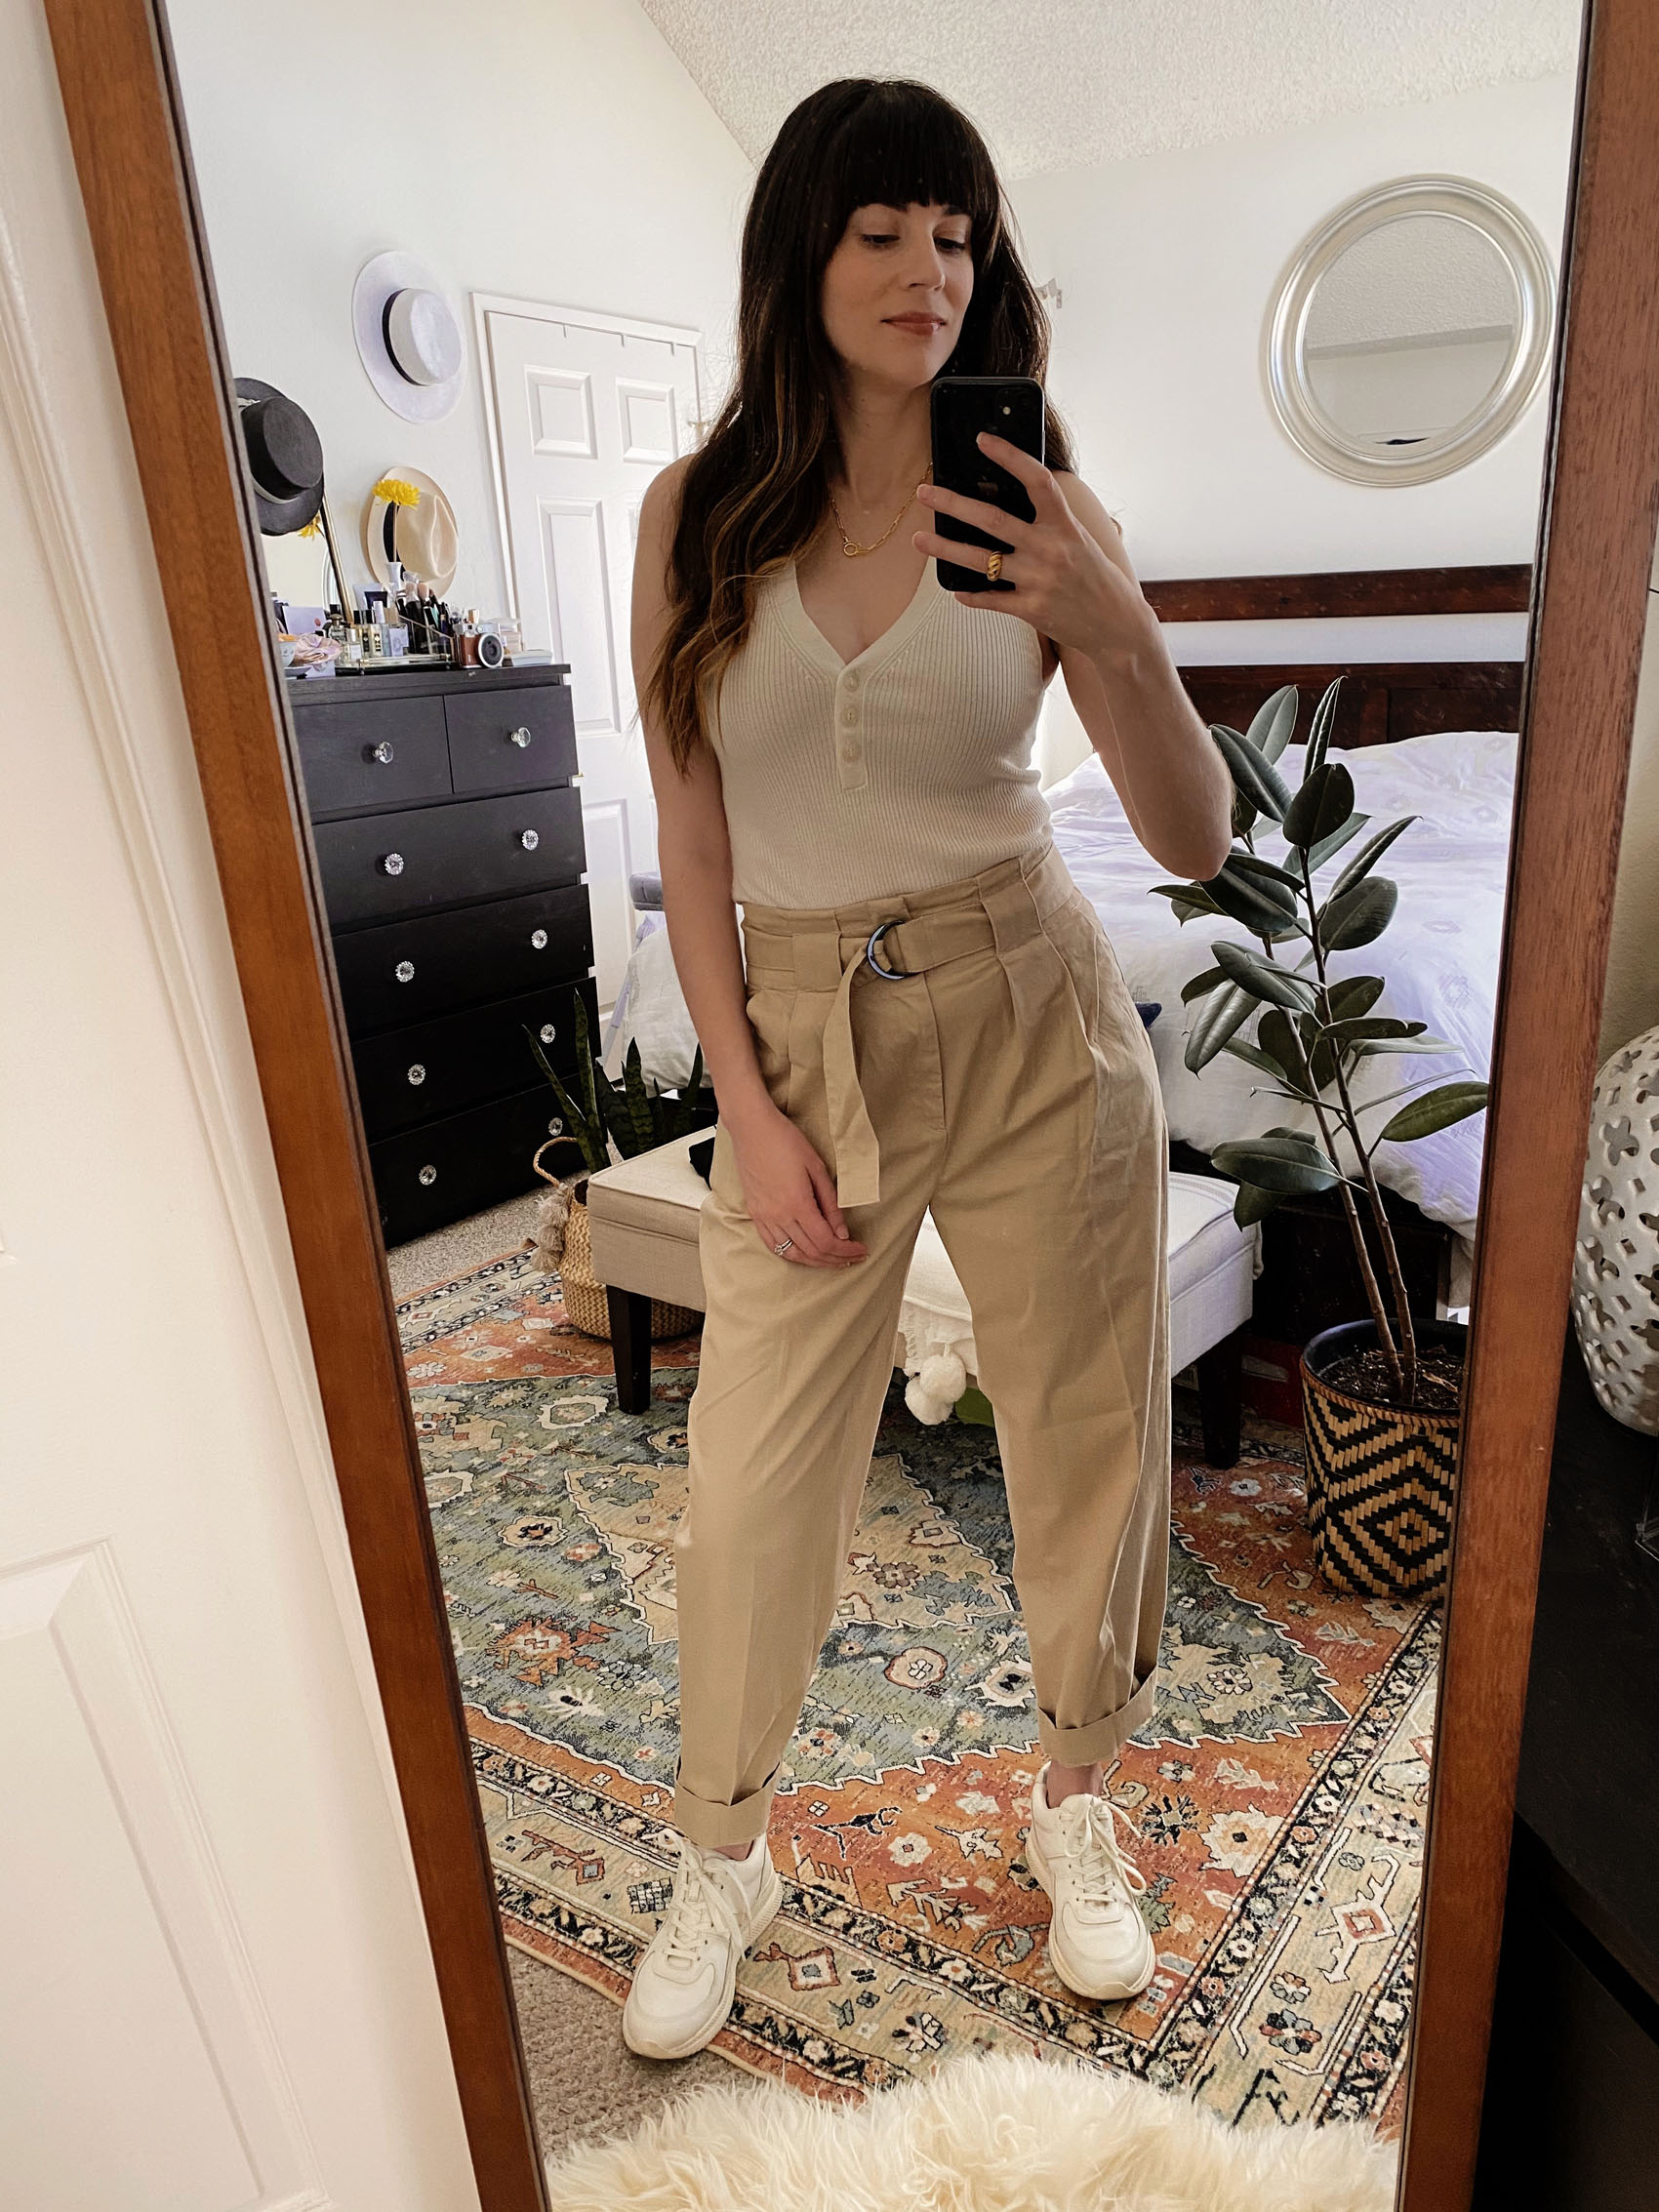 Banana Republic Pleated Pants with Naadam Tank and Everlane Sneakers